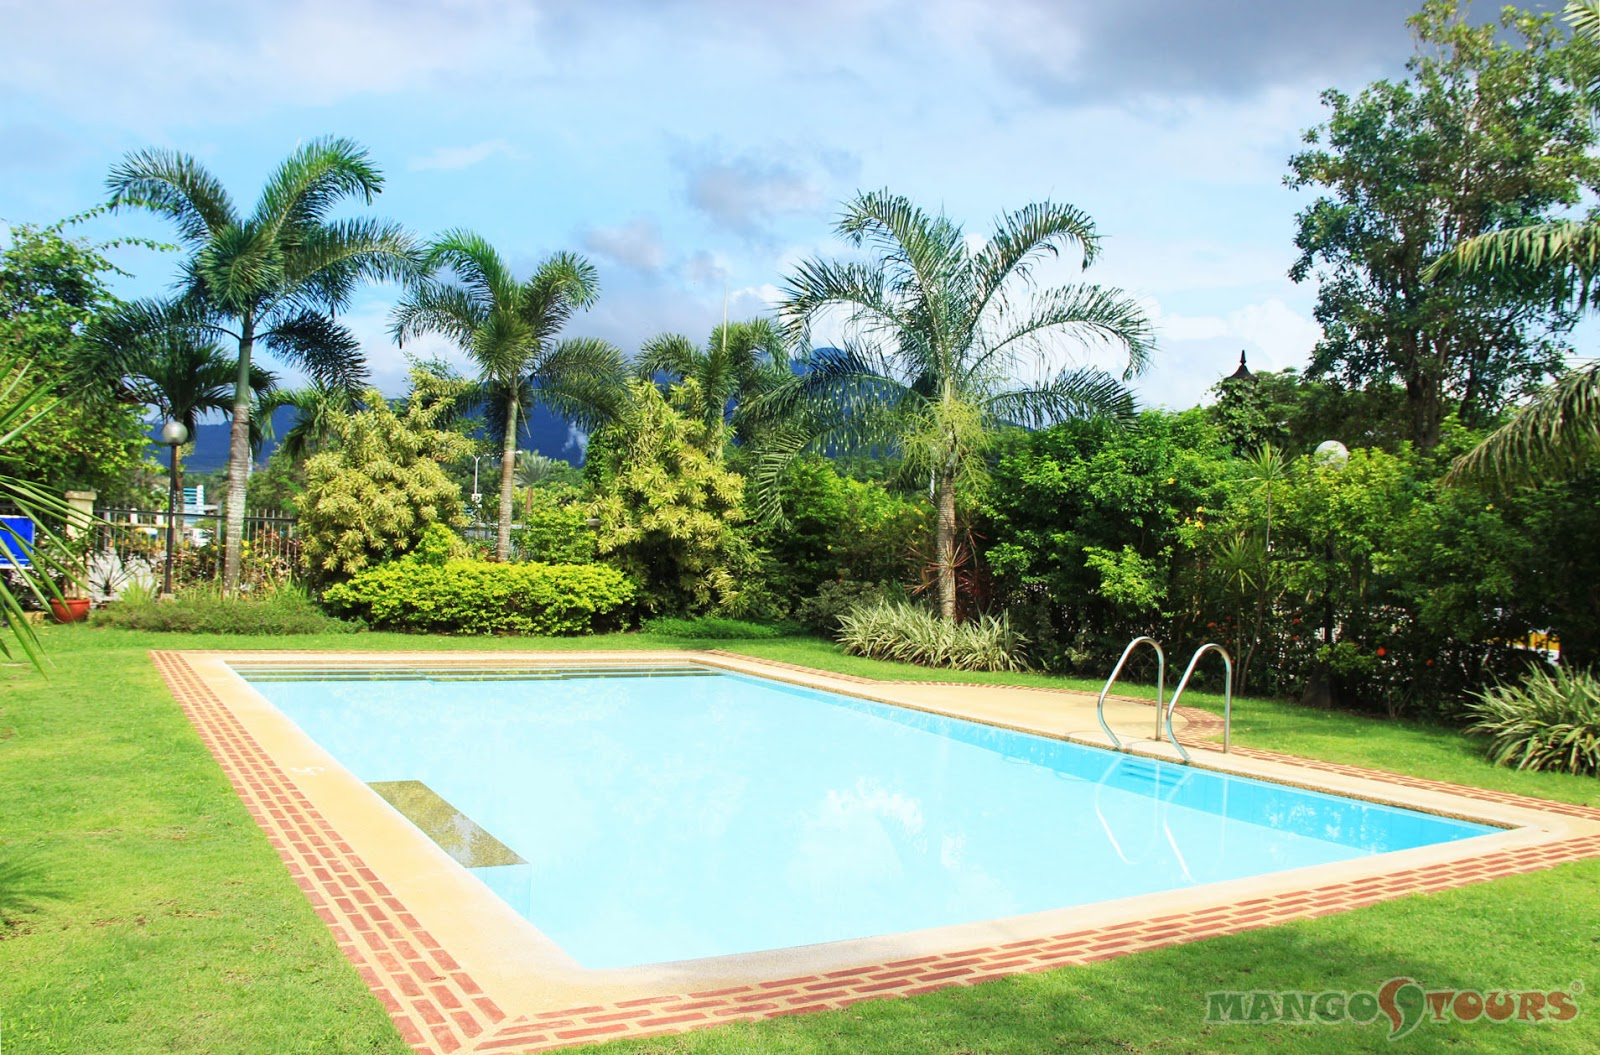 Mango Tours Microtel by Wyndham Sto. Tomas Batangas outdoor swimming pool